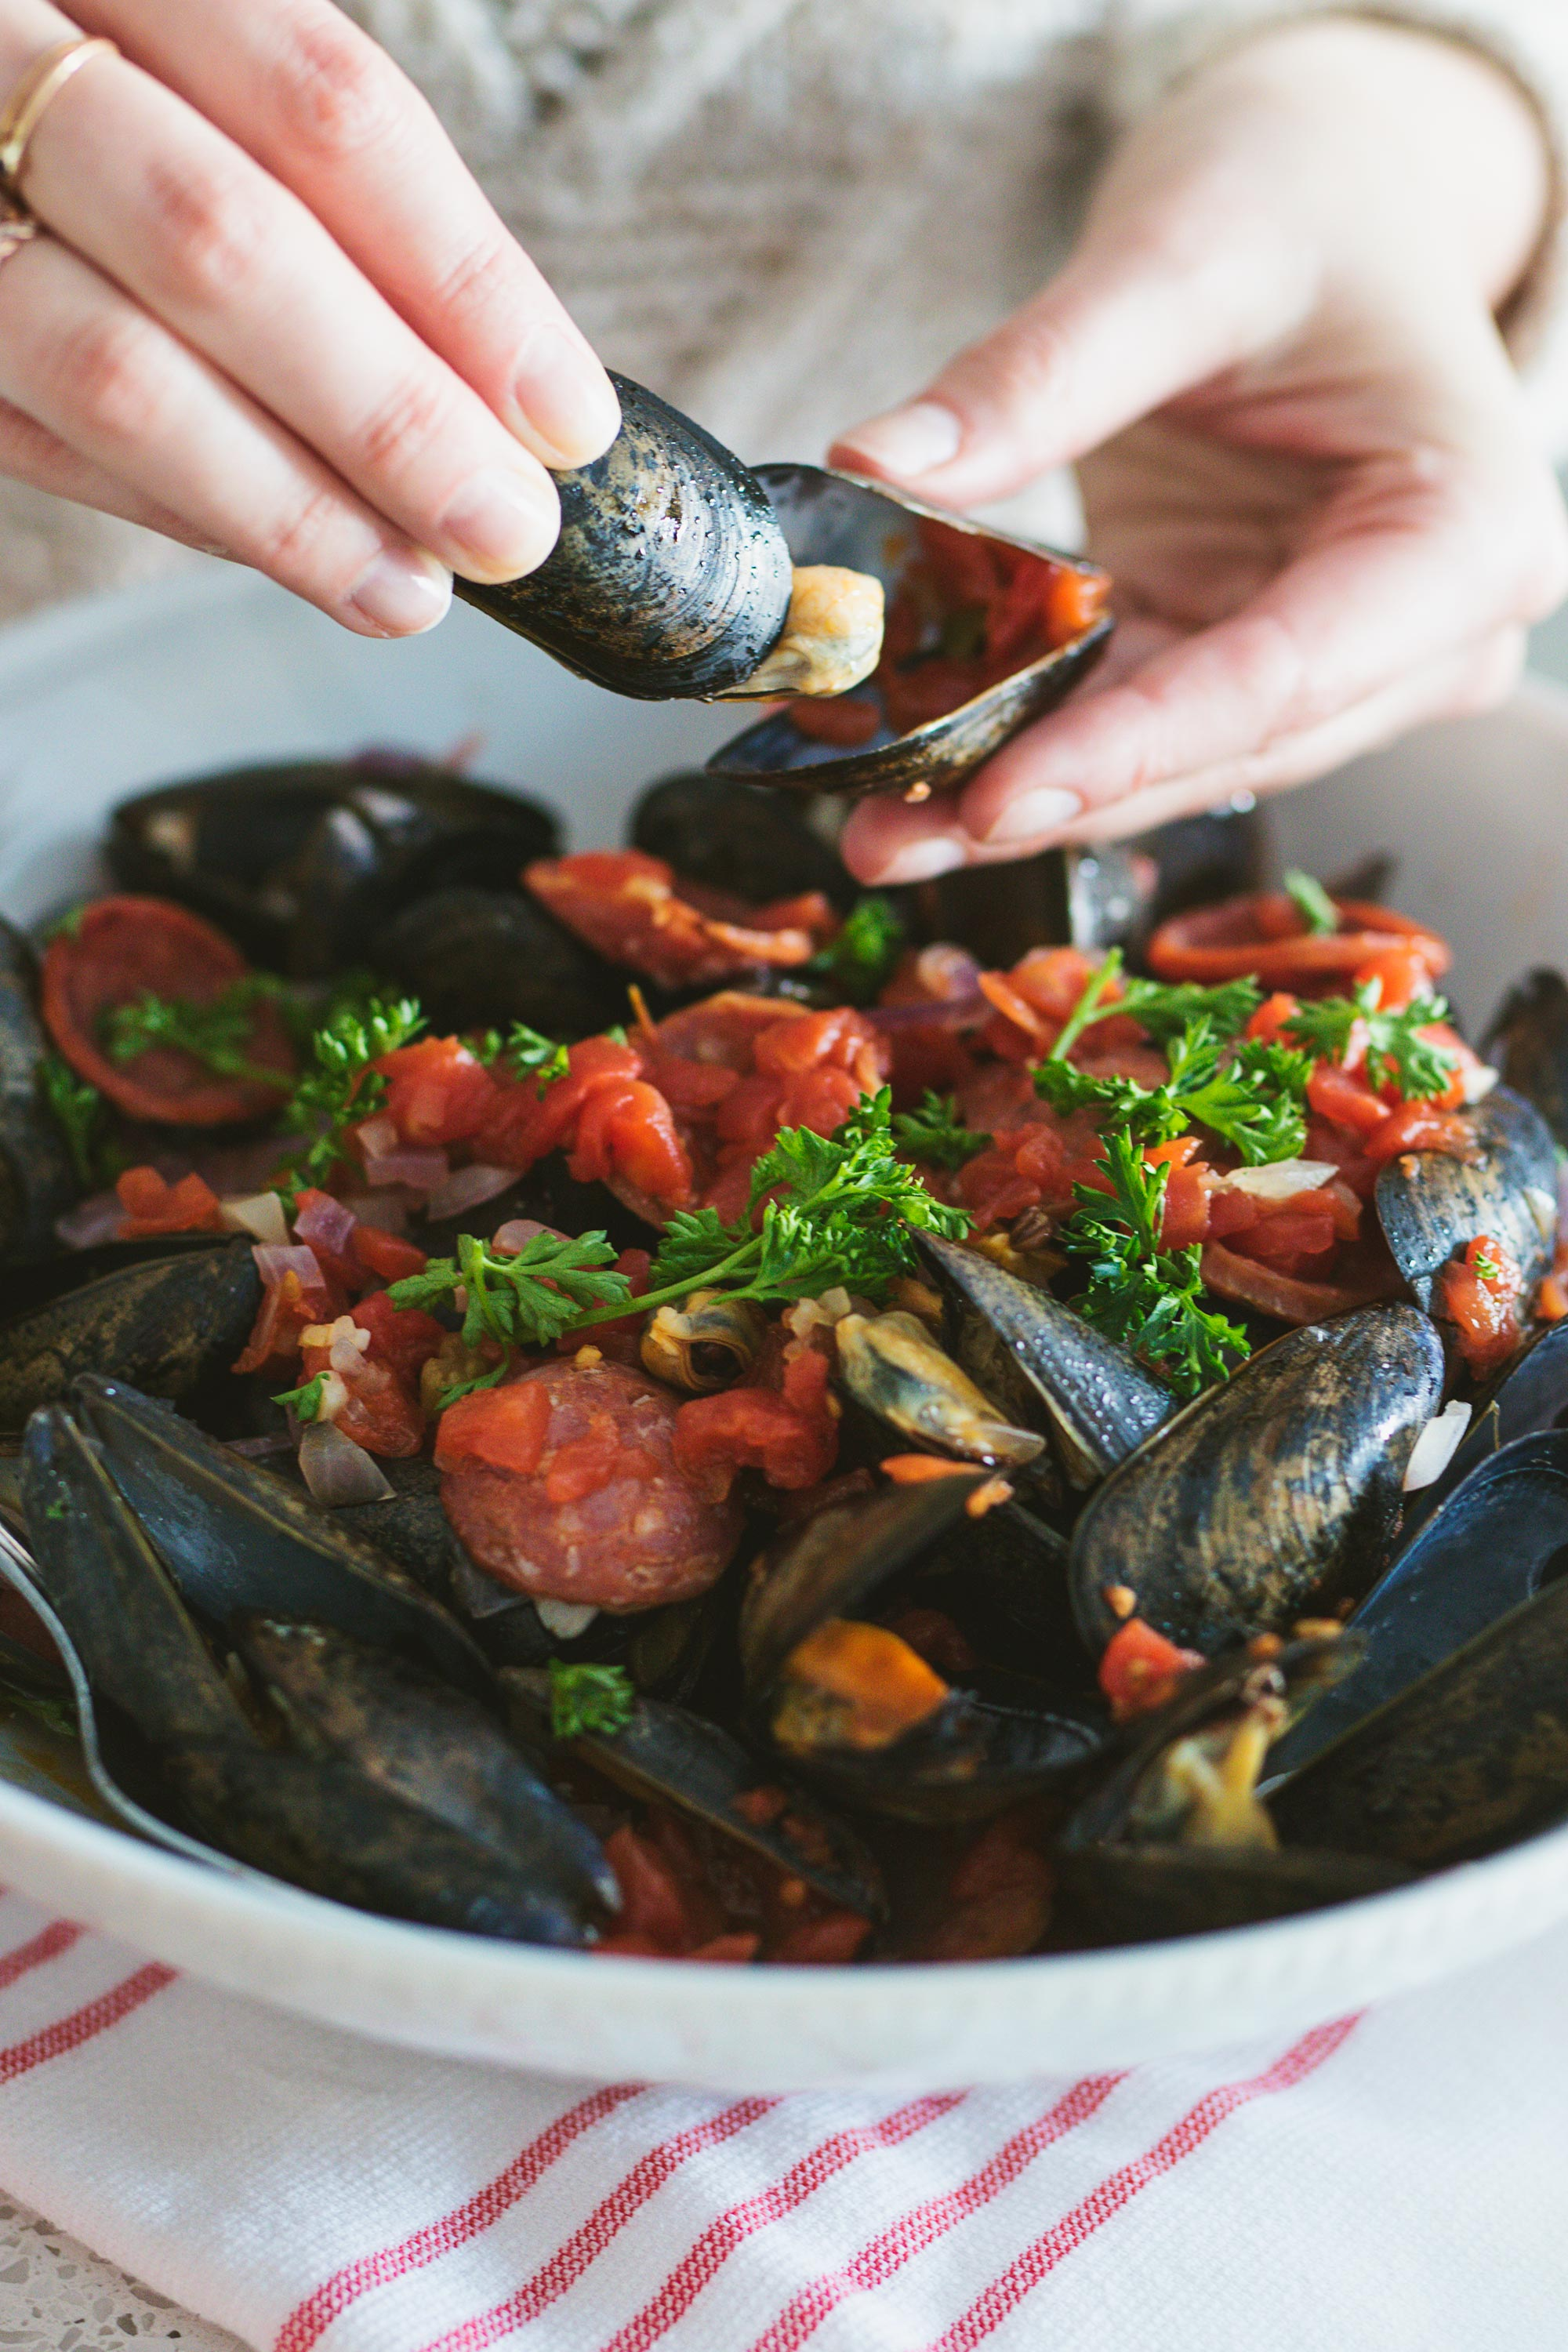 Eating Tomato, Chorizo & Wine Steamed Mussels